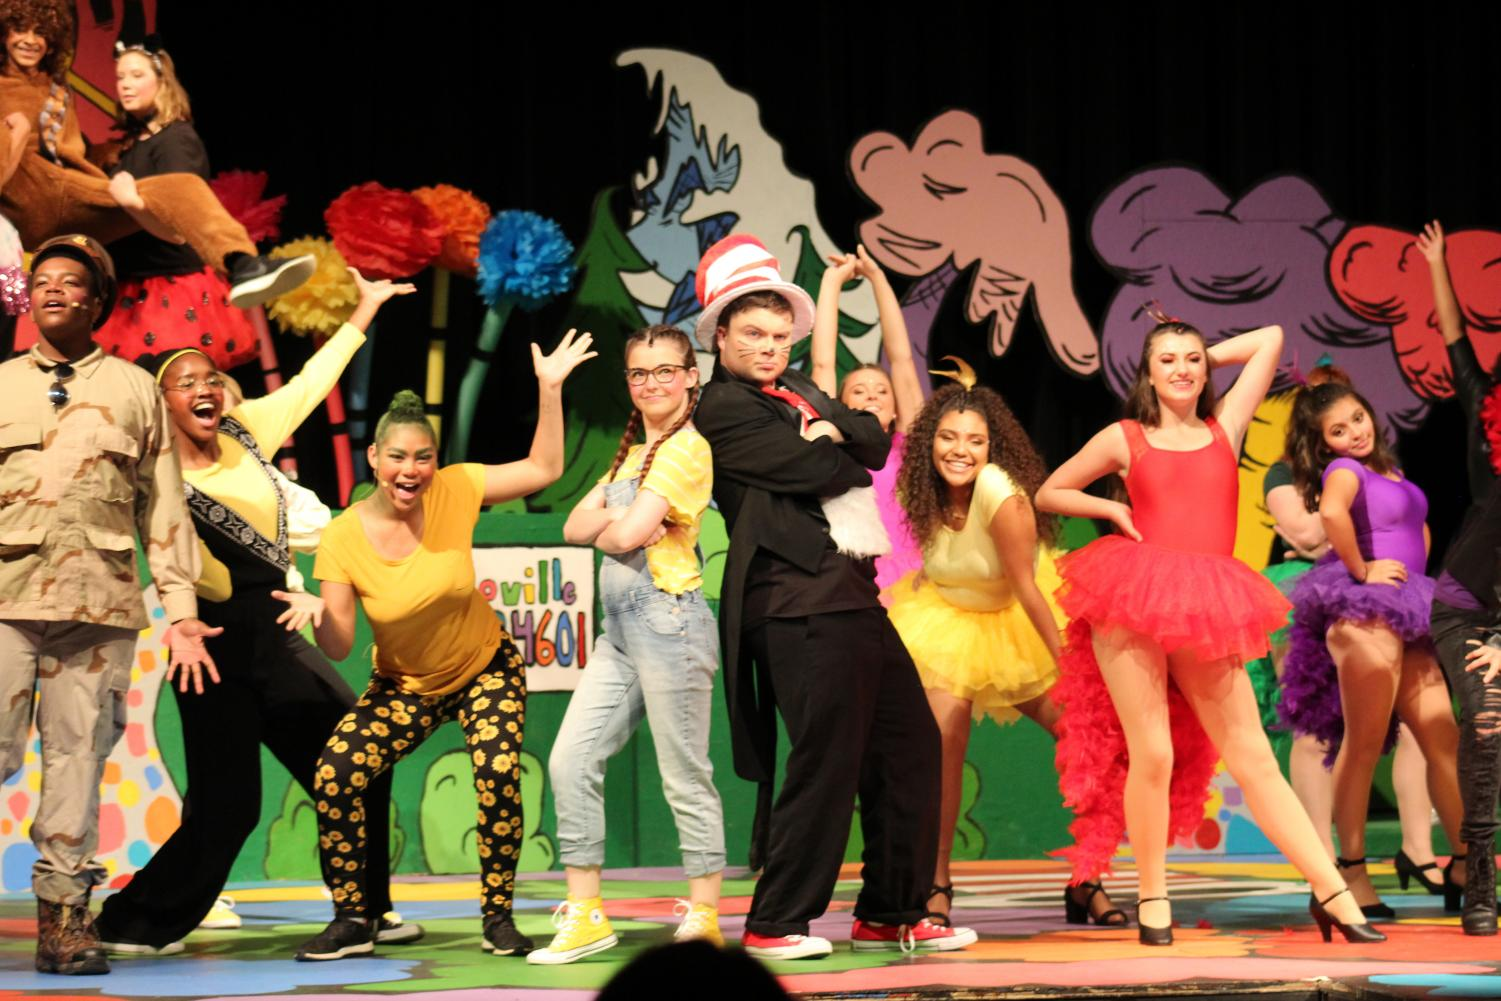 The cast of Seussical performs on stage. The Whos, Cat in the Hat, Jojo, the birds, and other various characters dance and sing to one of the songs. (Alexis Drummond)